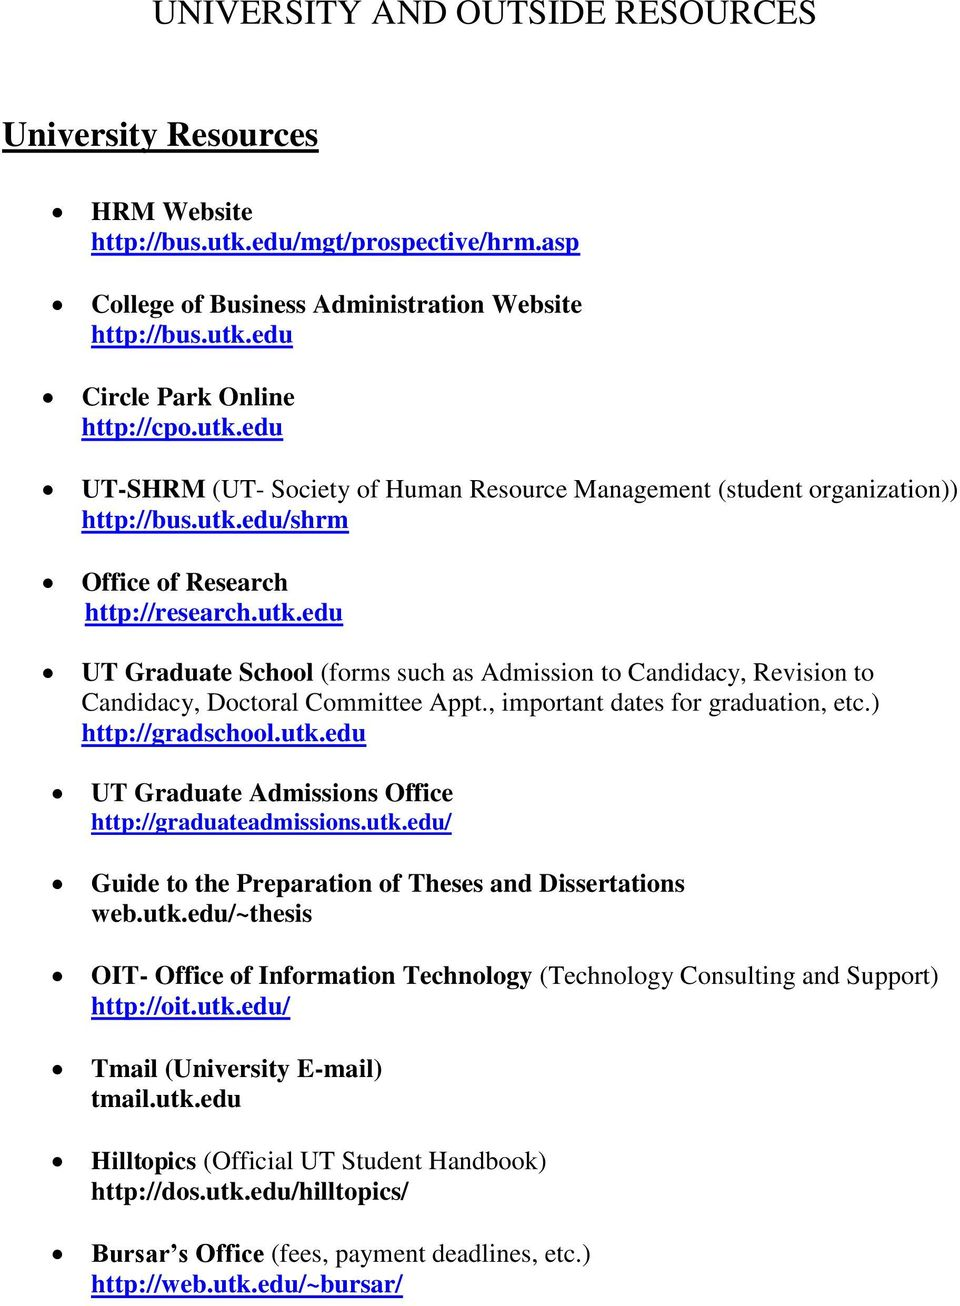 , important dates for graduation, etc.) http://gradschool.utk.edu UT Graduate Admissions Office http://graduateadmissions.utk.edu/ Guide to the Preparation of Theses and Dissertations web.utk.edu/~thesis OIT- Office of Information Technology (Technology Consulting and Support) http://oit.